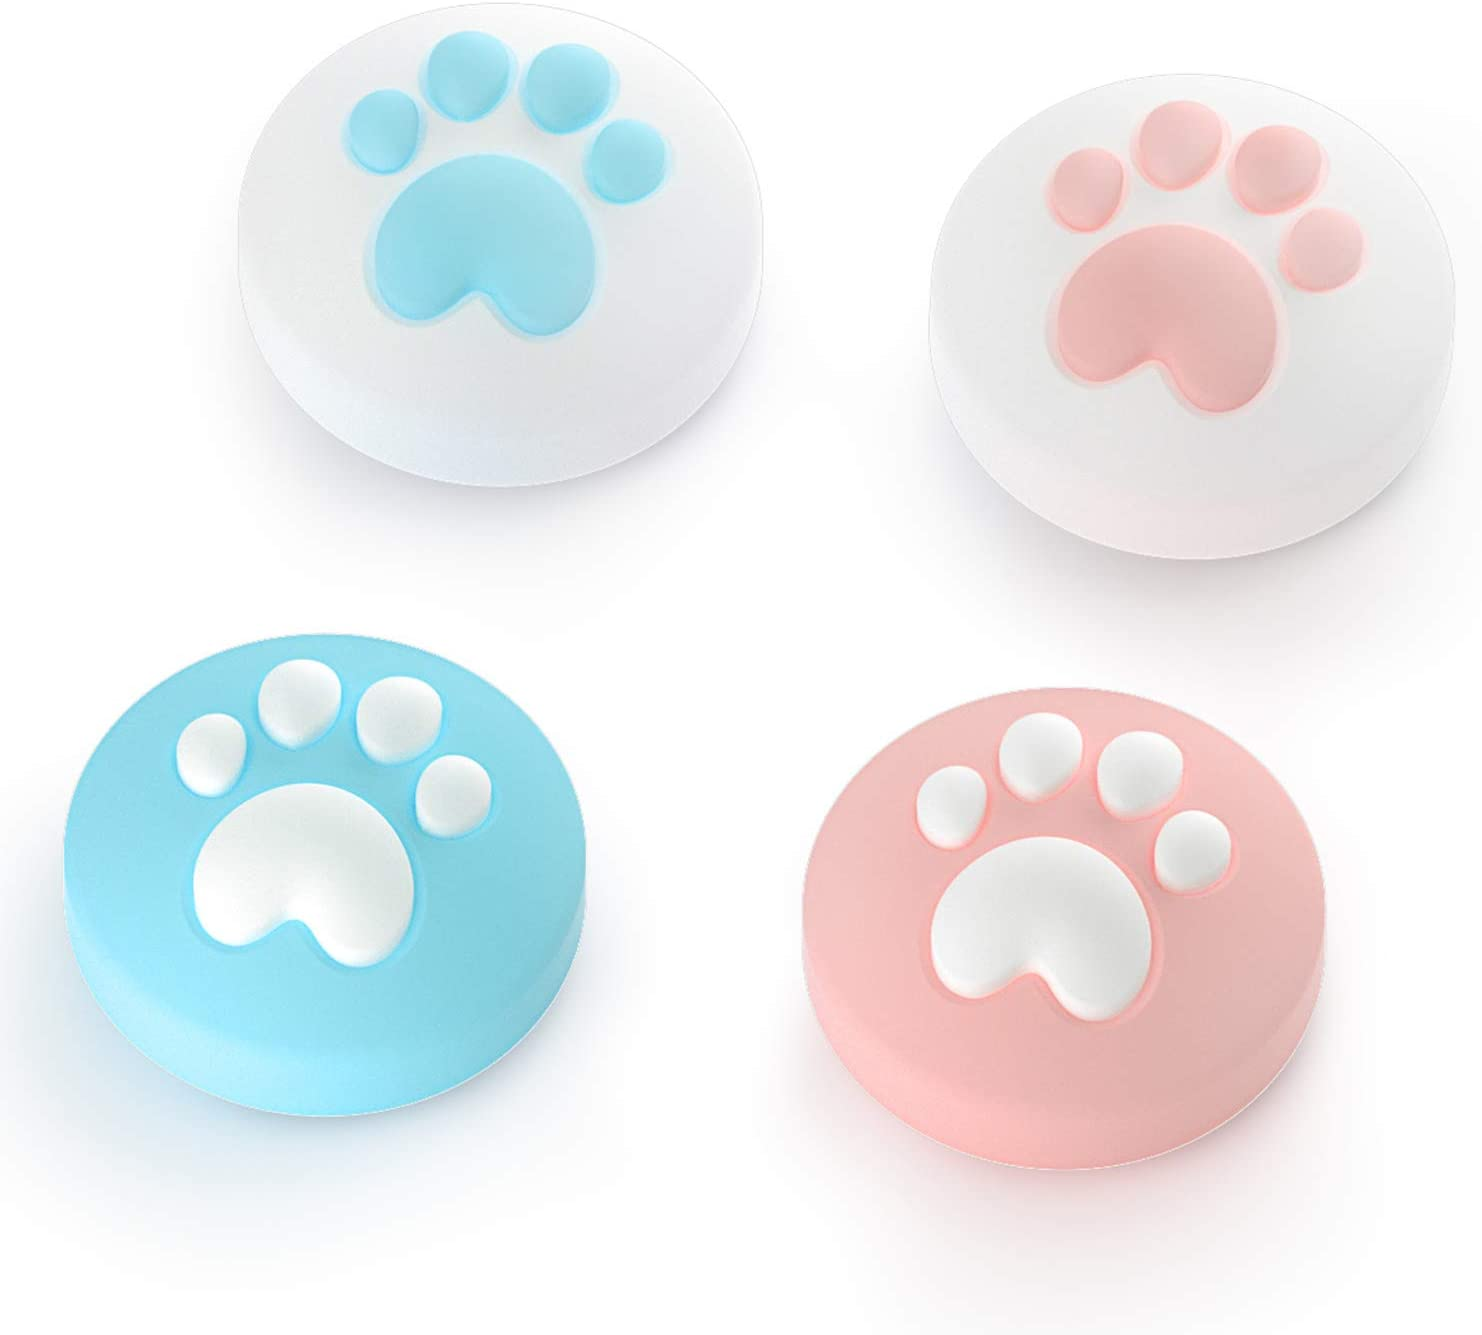 LeyuSmart Cat Claw Design Thumb Grip Caps, Joystick Cap for Nintendo Switch & Lite, Soft Silicone Cover for Joy-Con Controller ( Pink&Blue)